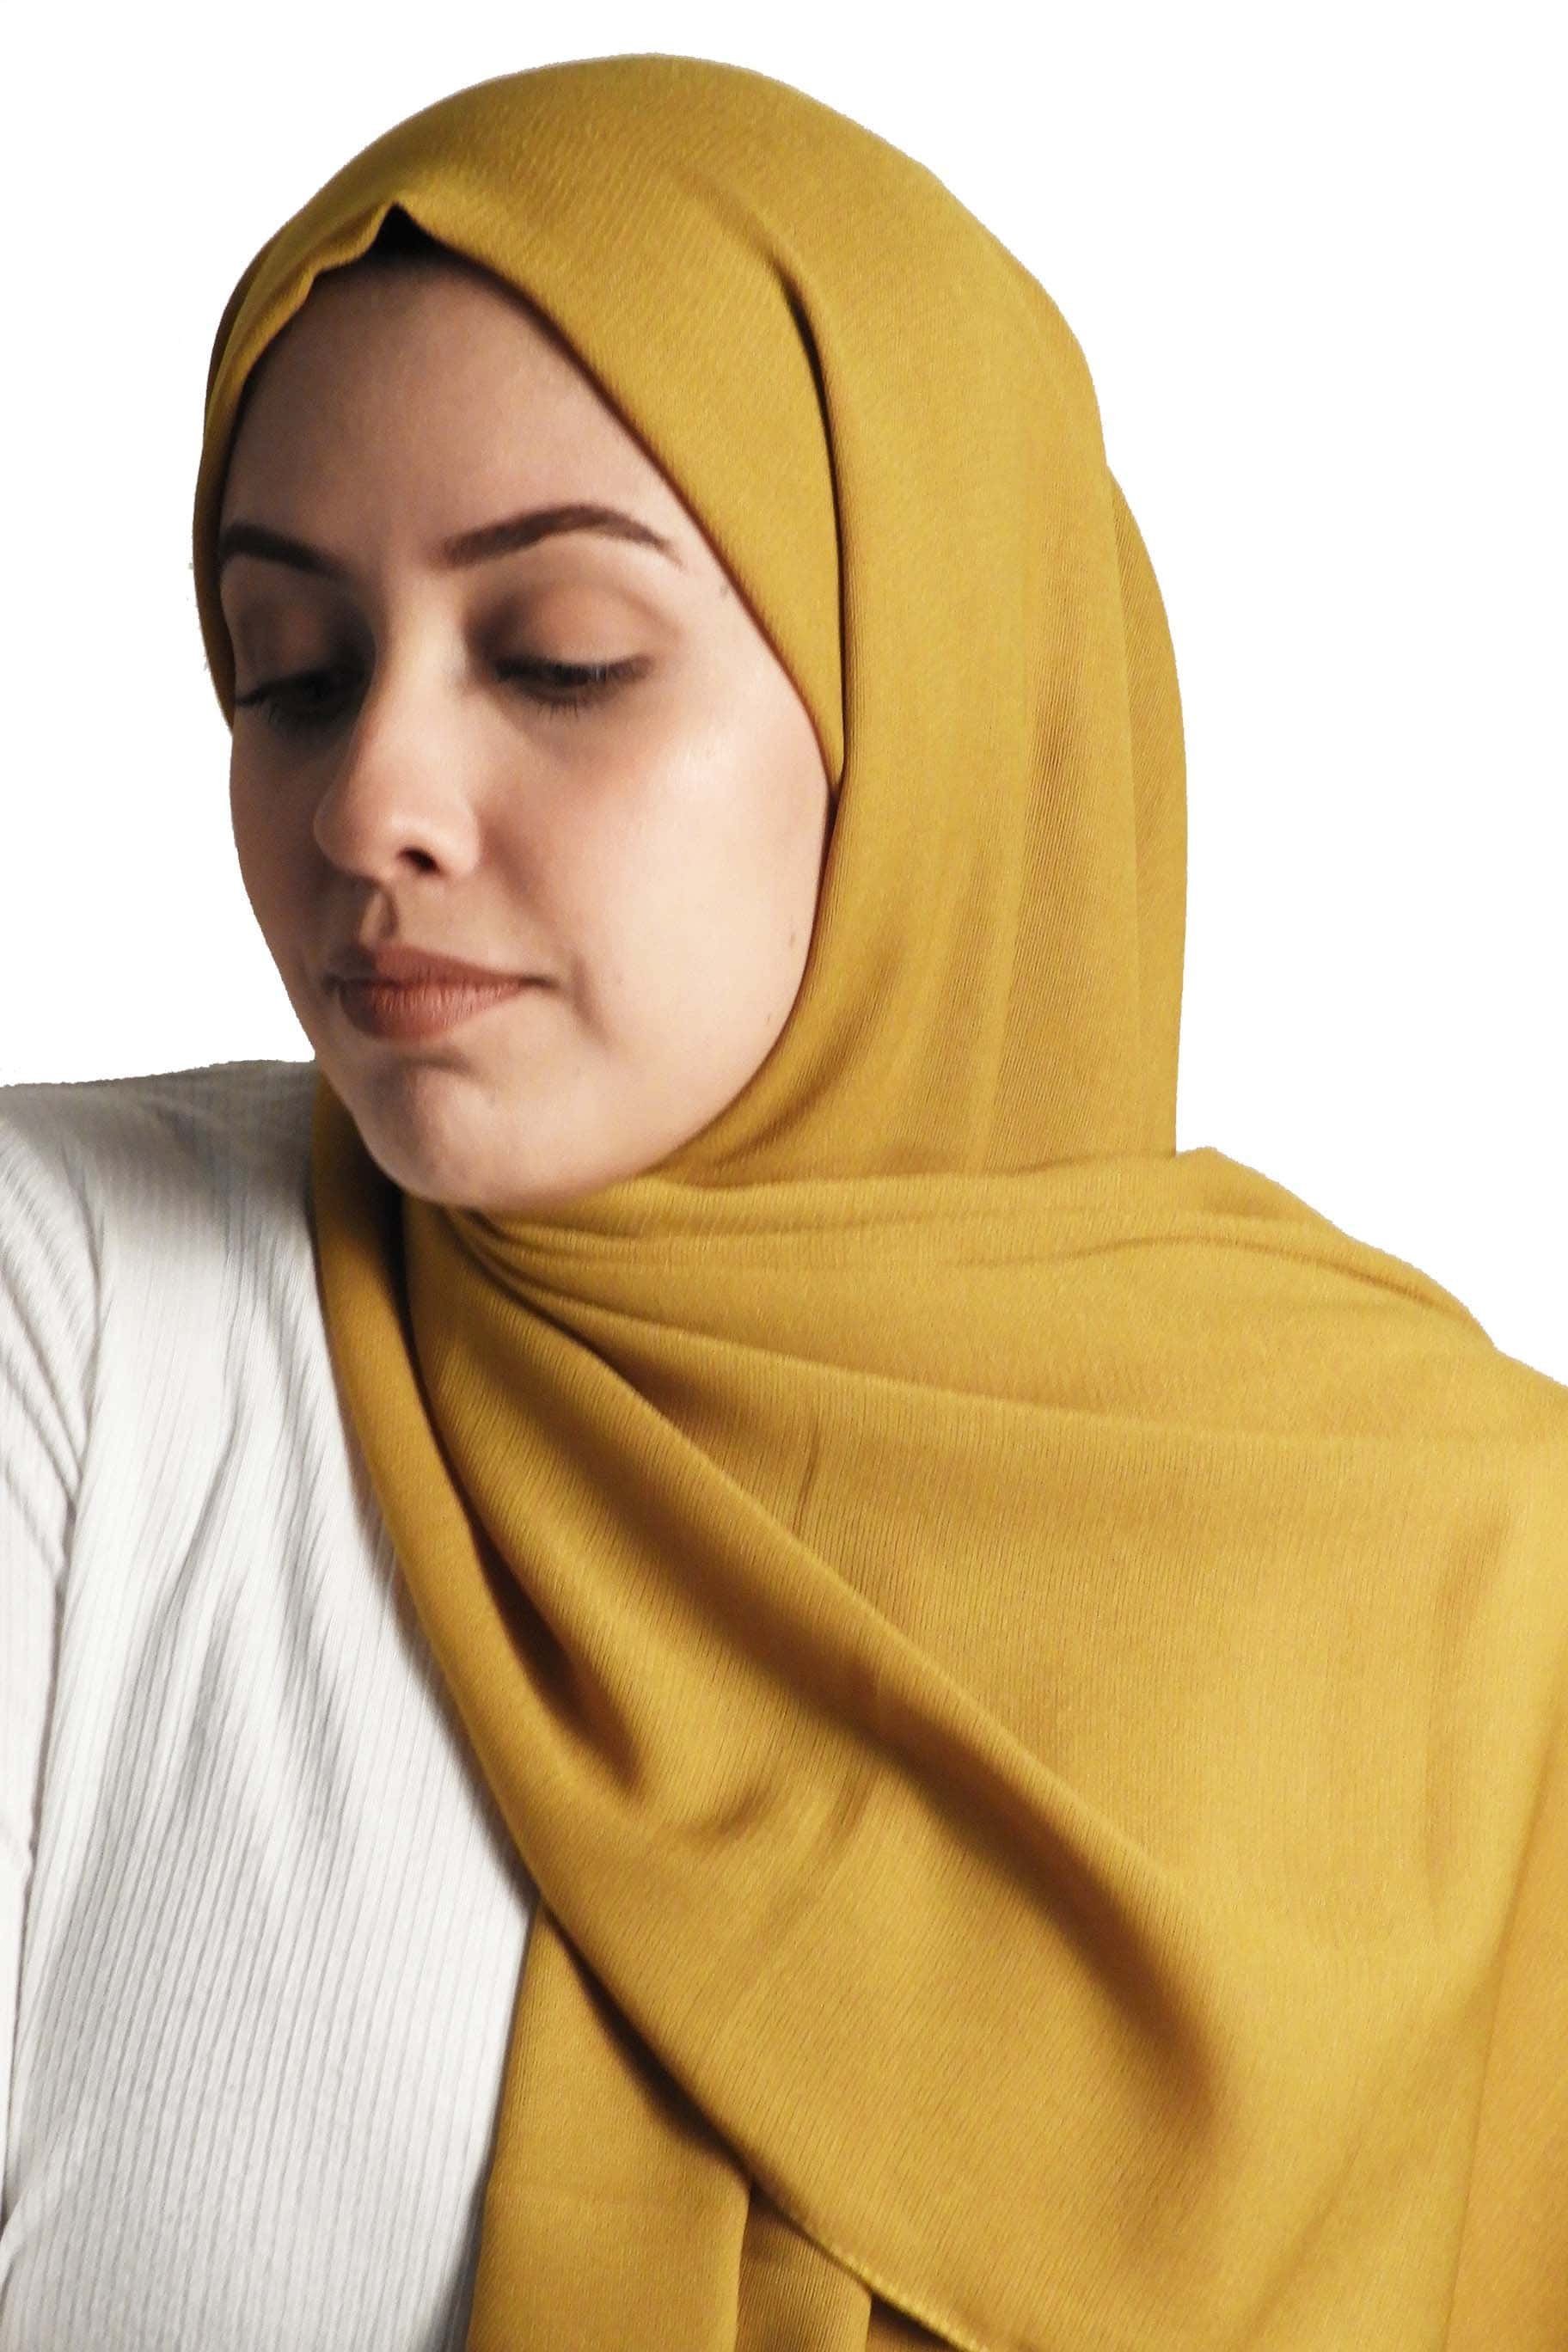 Mustard Yellow Jute Cotton - Jute-Cotton Hijab - The Modest Look